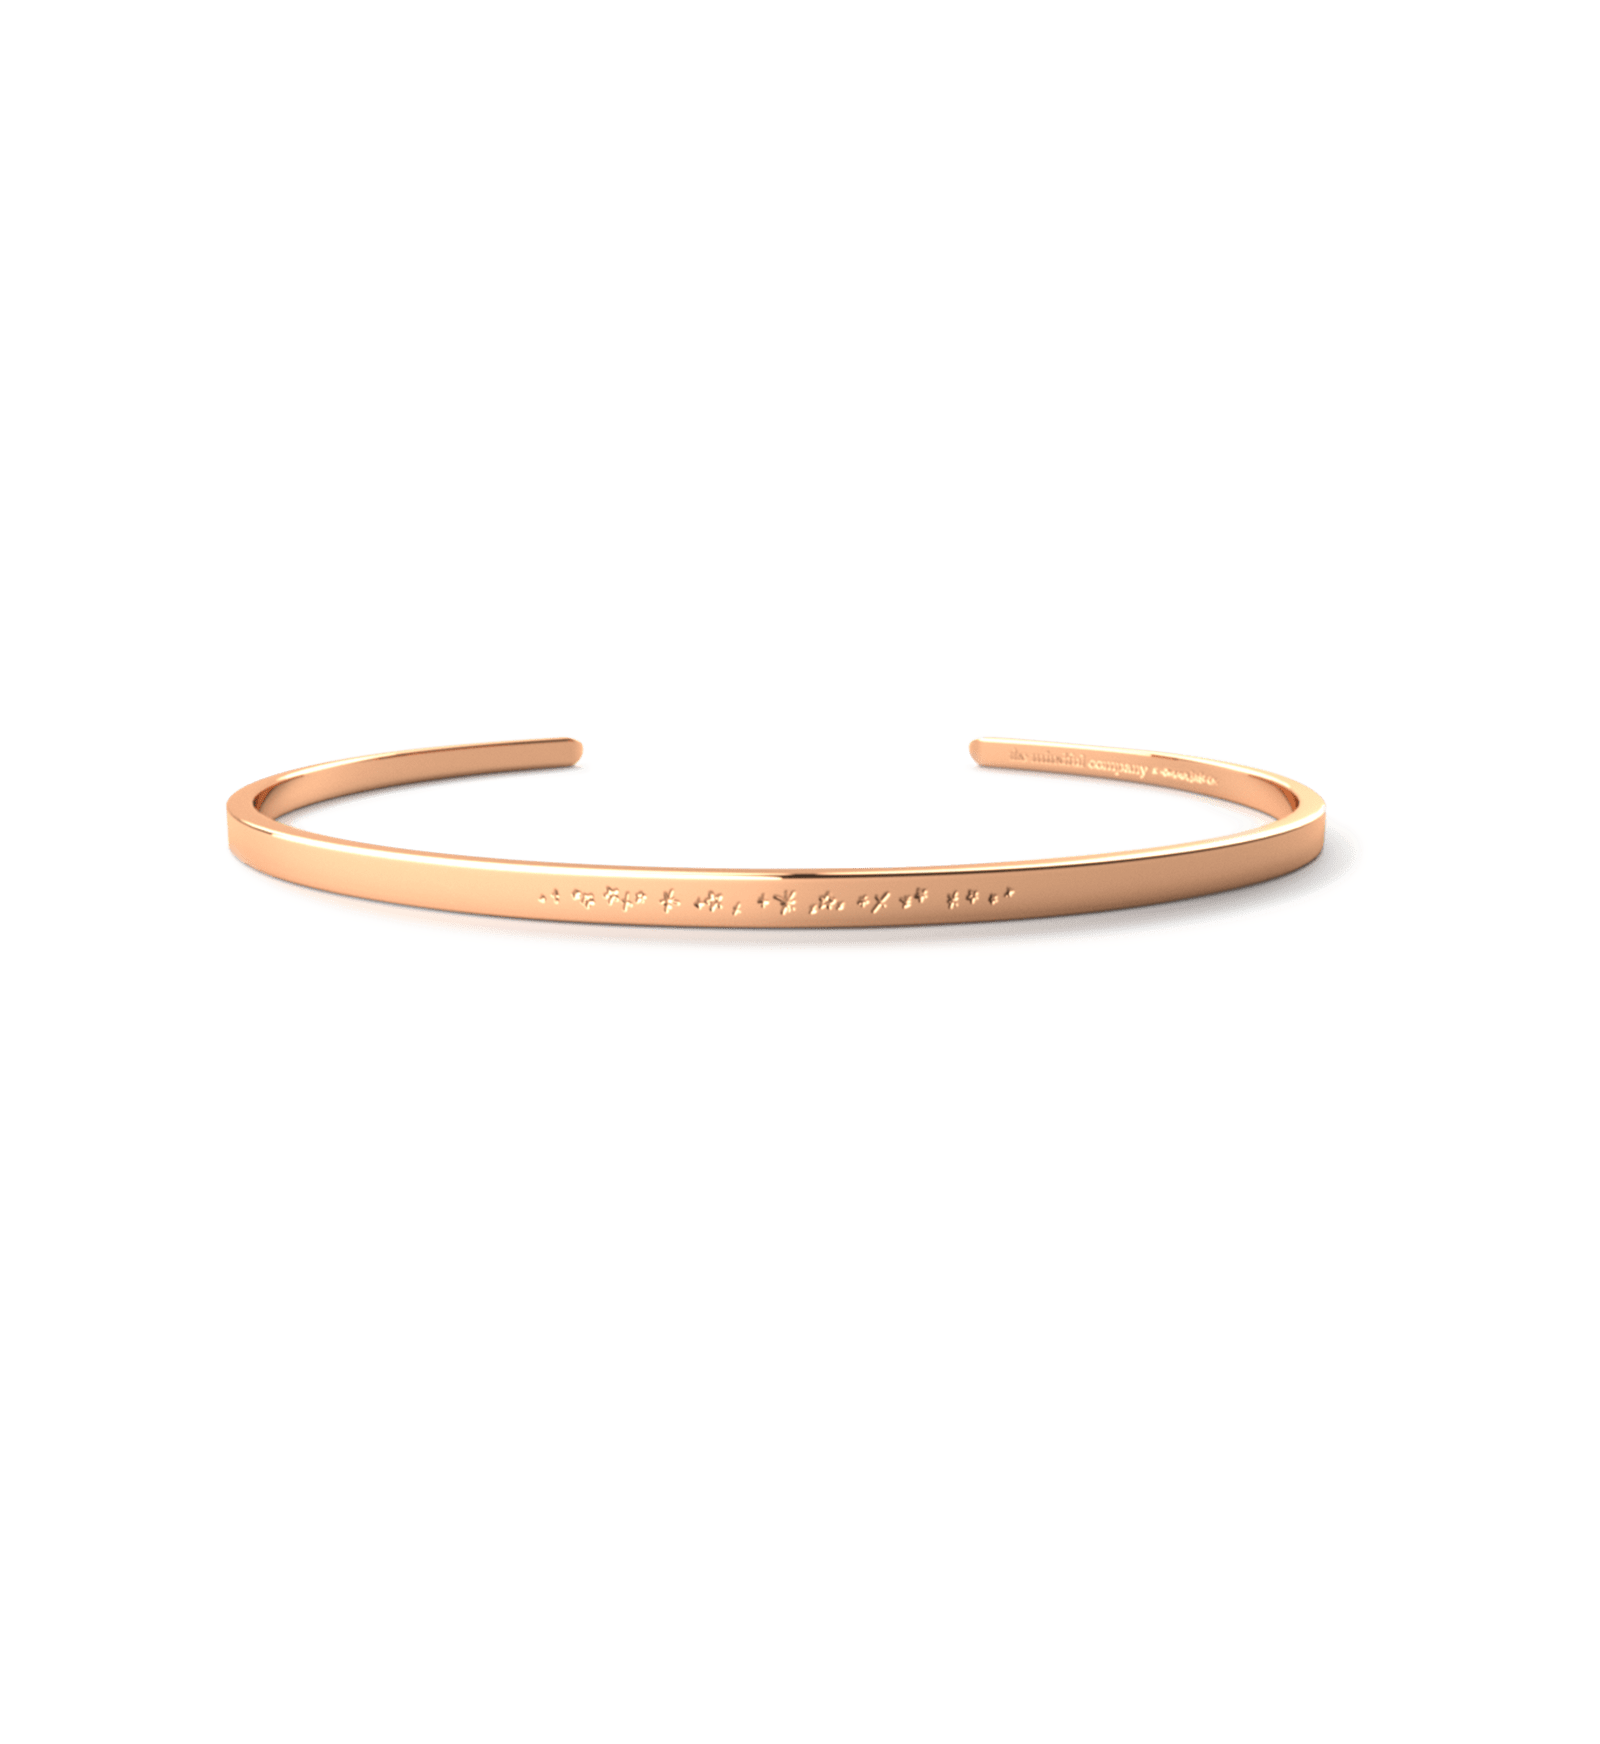 Raspberry Lane Boutique EmmaKate co - Stardust Cuff - Rose Gold